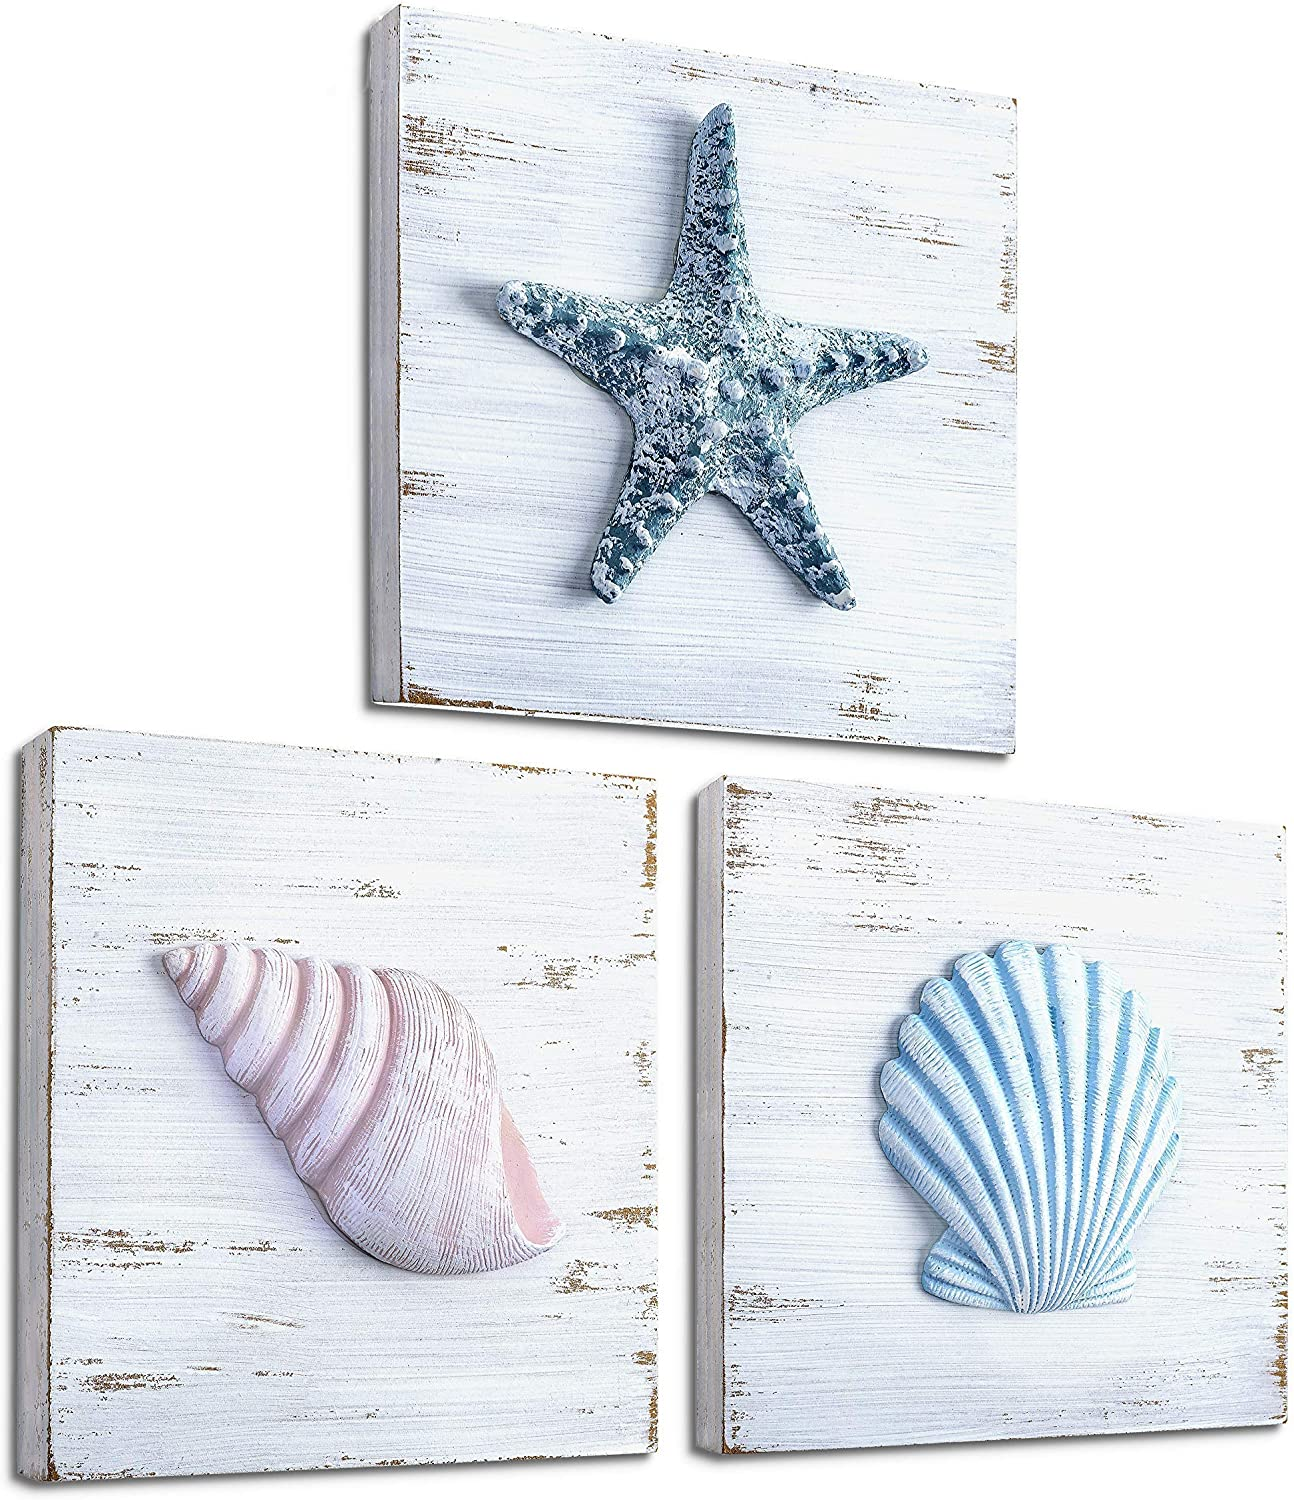 TideAndTales Beach Theme Seashell Wall Decor (Set of 10)  Shells and  Starfish Beach Decor for Bathroom, Bedroom or Living Room  Rustic Coastal  Decor